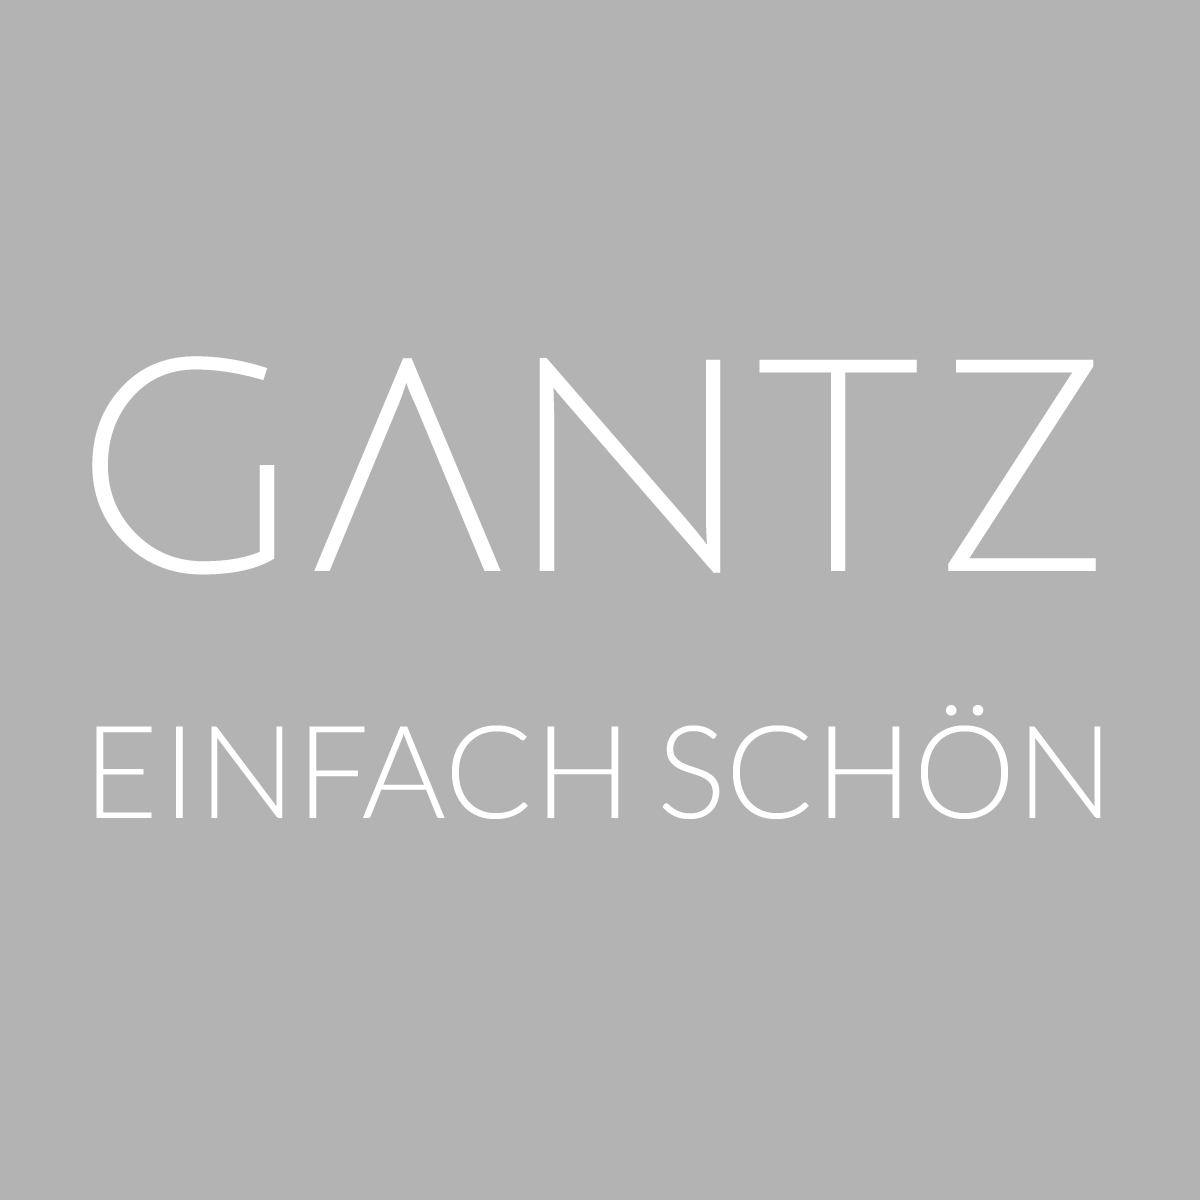 gantz einfach sch n regale nach ma in berlin. Black Bedroom Furniture Sets. Home Design Ideas